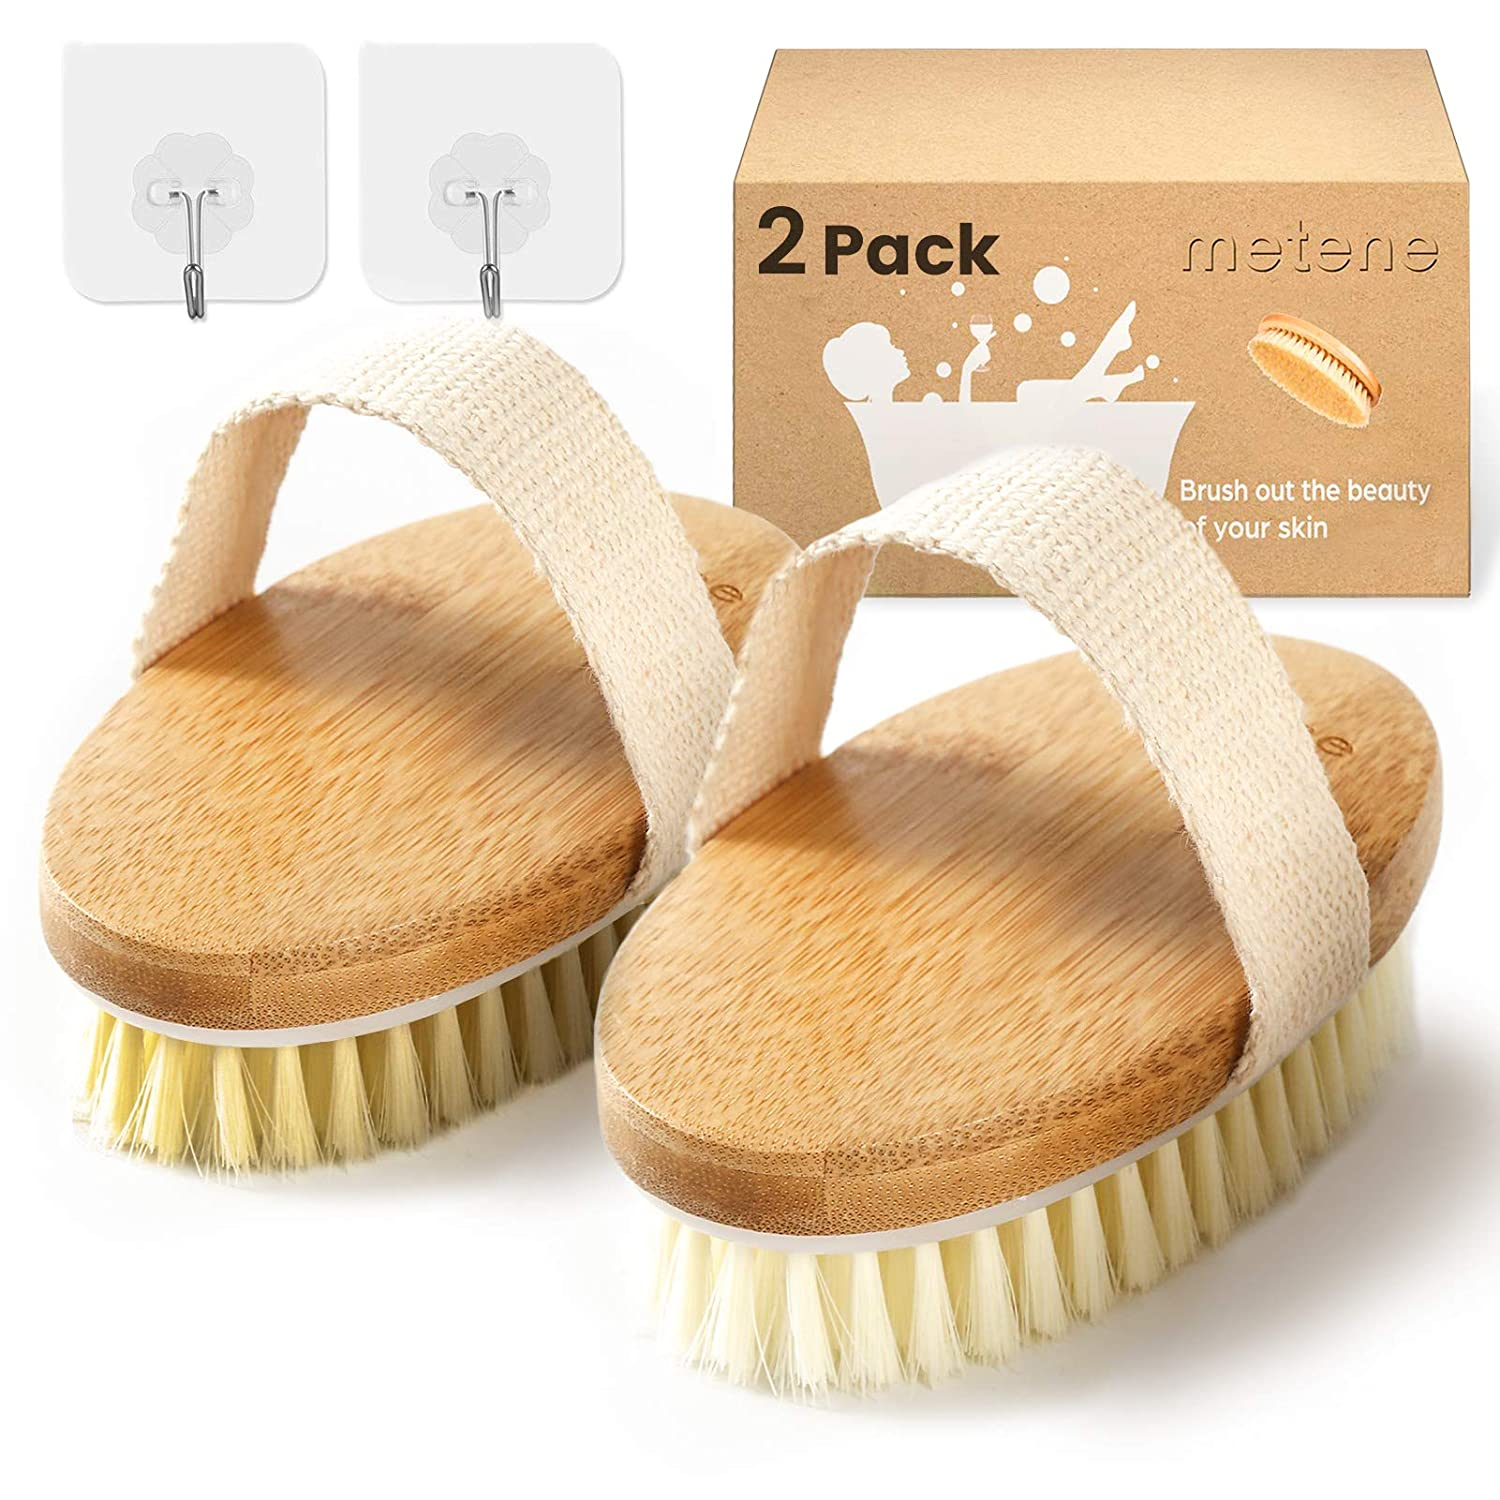 Metene Dry Brush, 2 Pack Dry Brushing Body Brush with Soft and Stiff Natural Bristles, Body Exfoliating Scrub Brush for Cellulite and Lymphatic, Improve Your Circulation, Dry Body Brush for Massage : Beauty